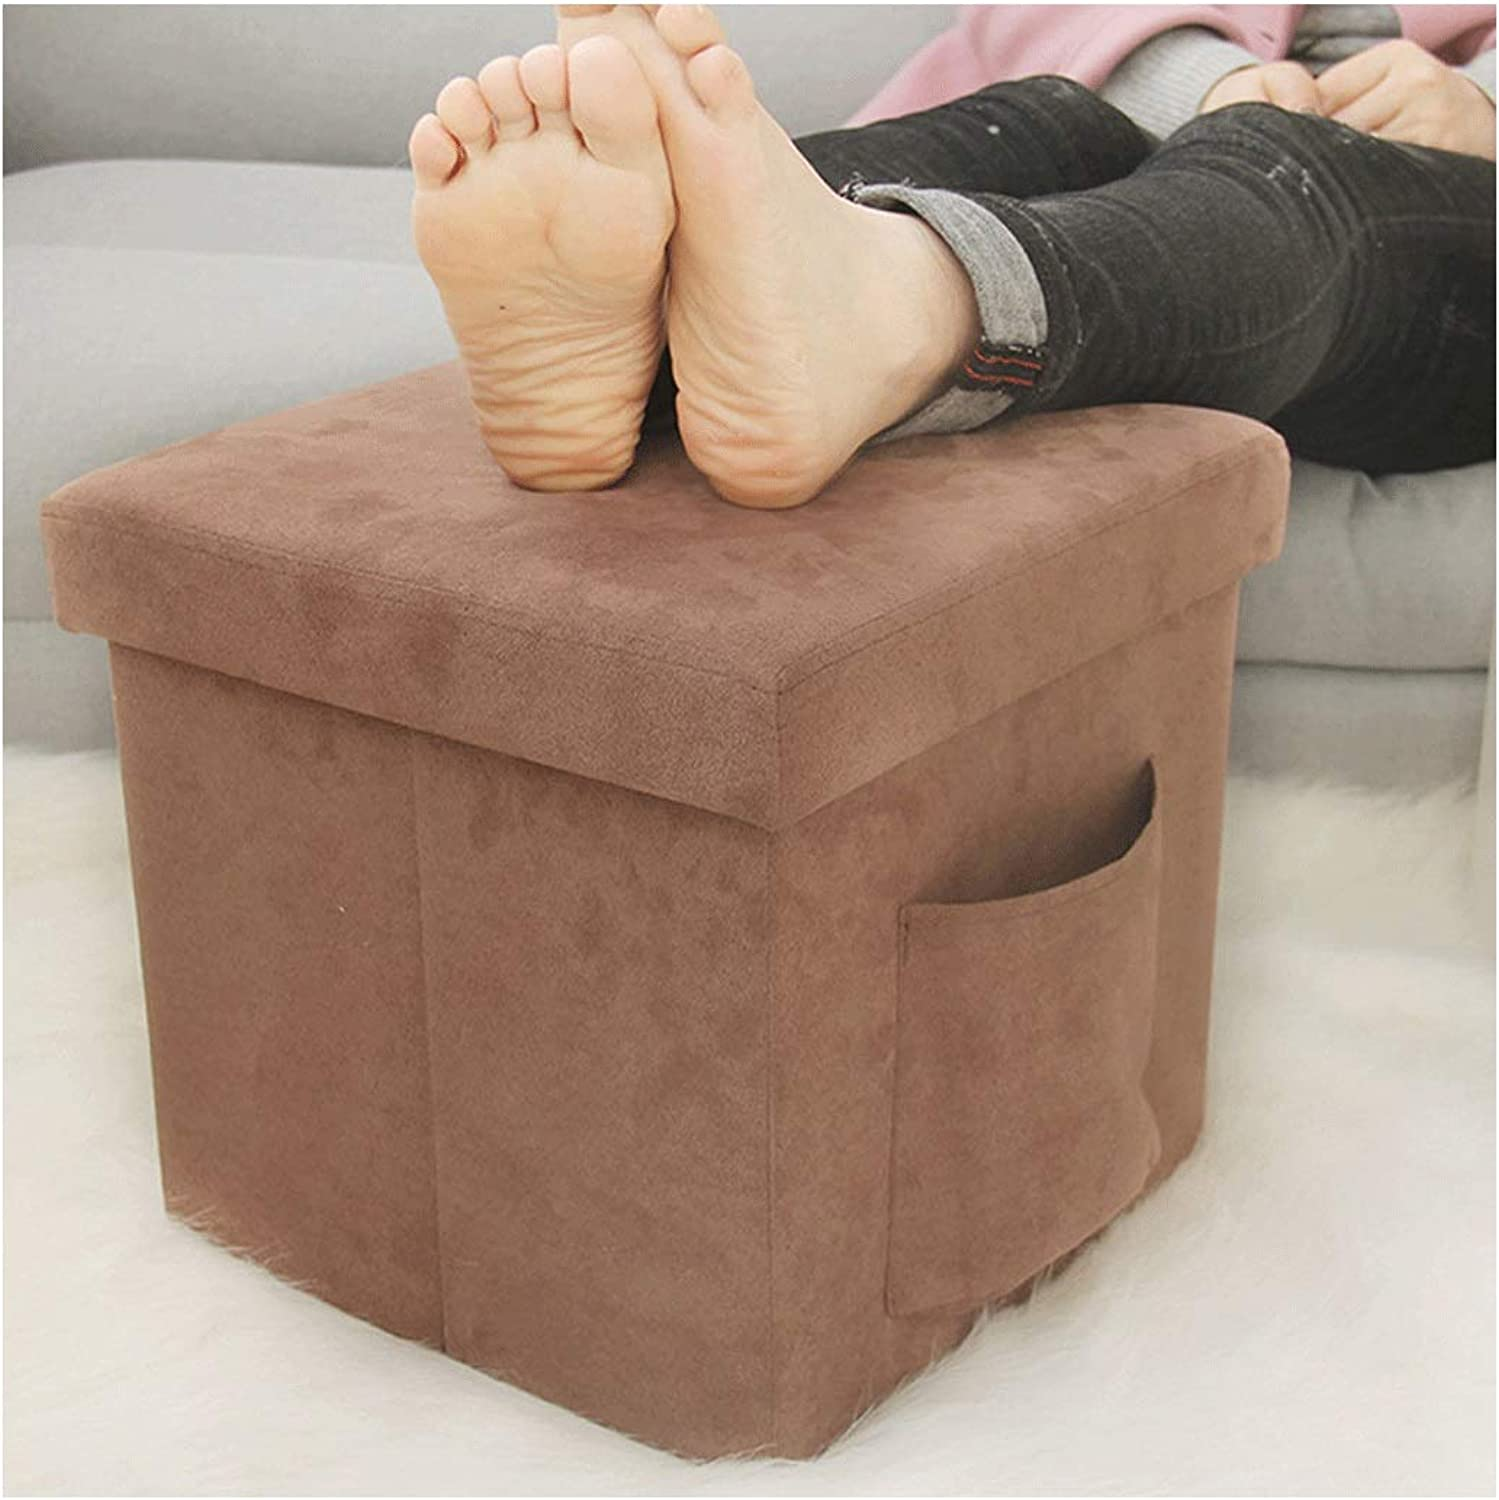 Sofa shoes Bench Suede Folding Storage Stool Storage Stool Can Sit People Storage Box Square (color   Brown, Size   30  30  30cm)